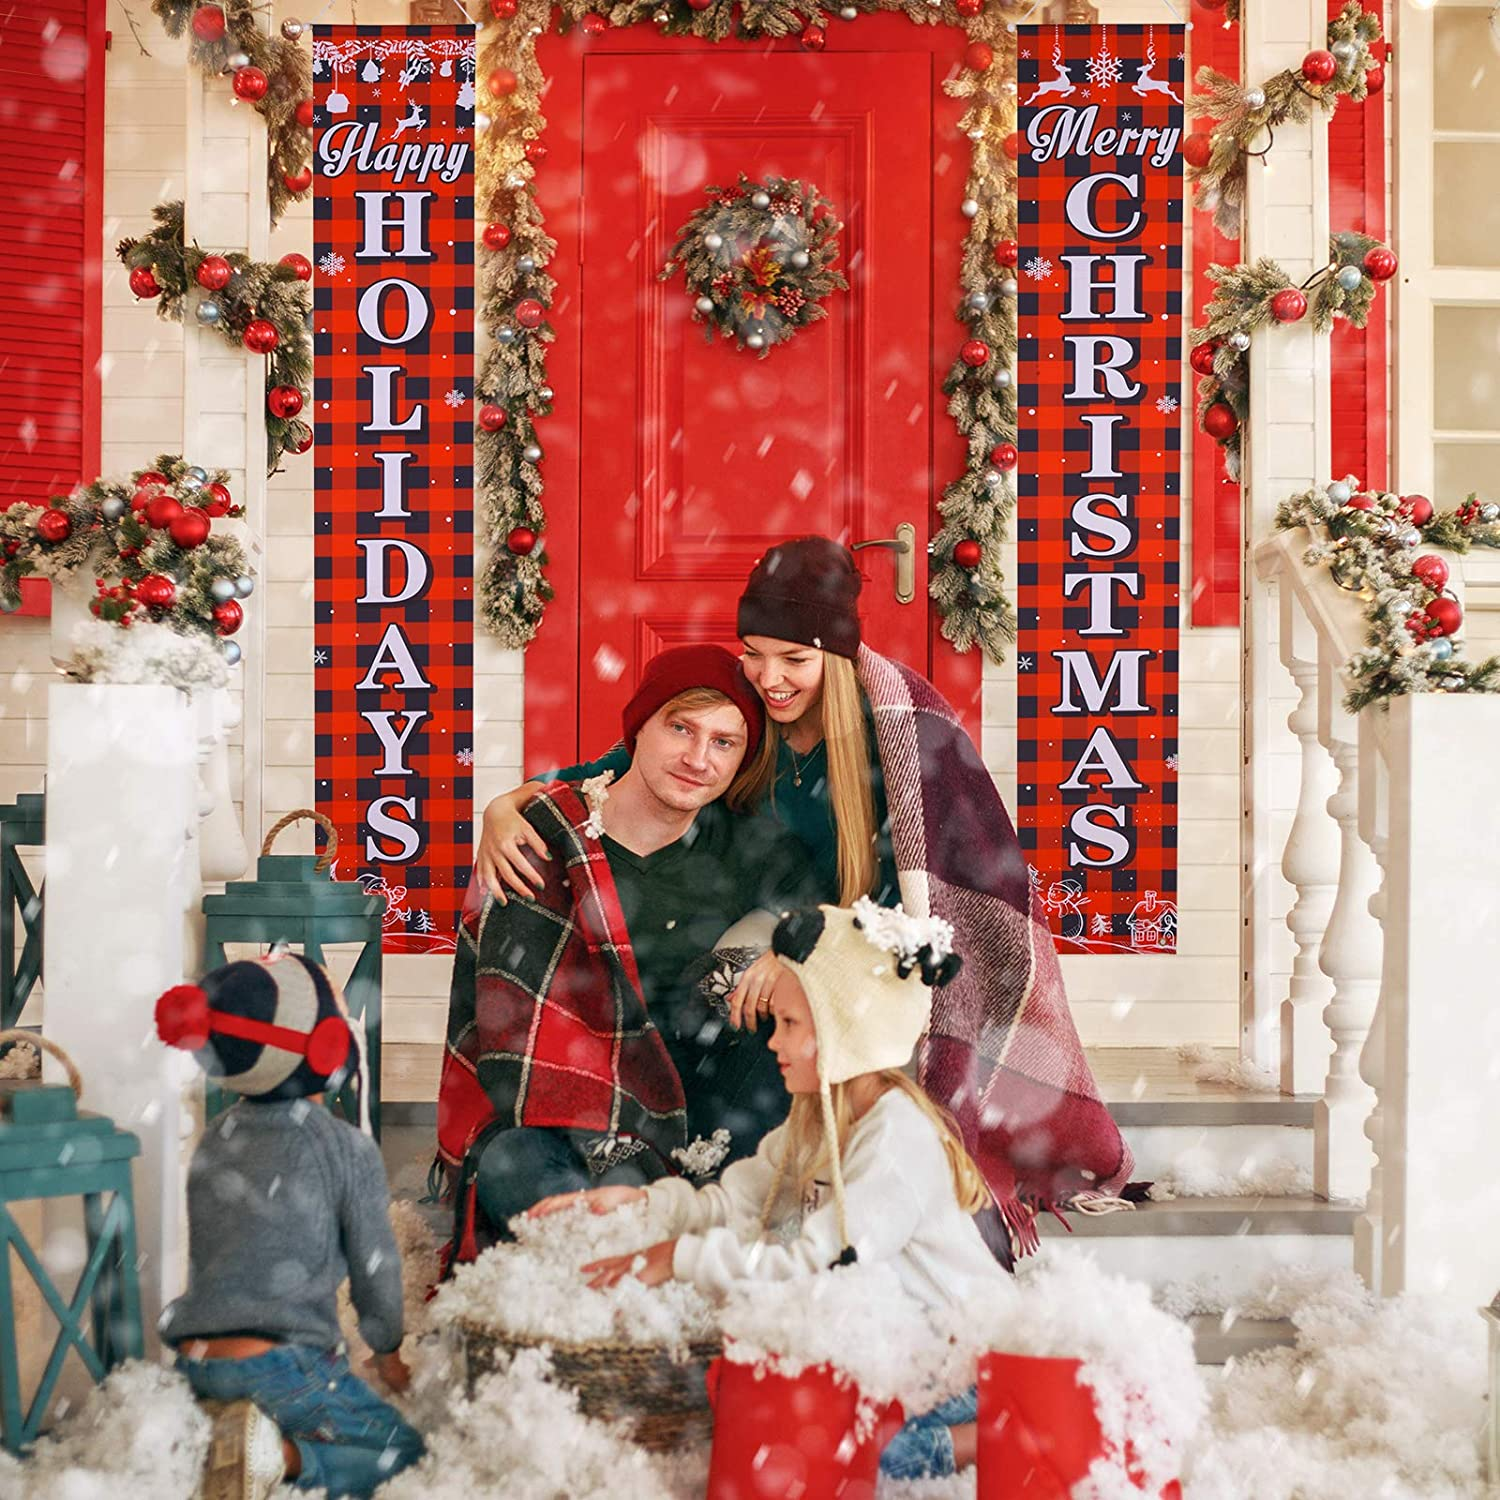 Christmas Porch Sign Hanging Xmas Decorations for Indoor Outdoor Holiday Front Door Home Wall Apartment Party Decorations Joyjoz Christmas Banner Christmas Decorations